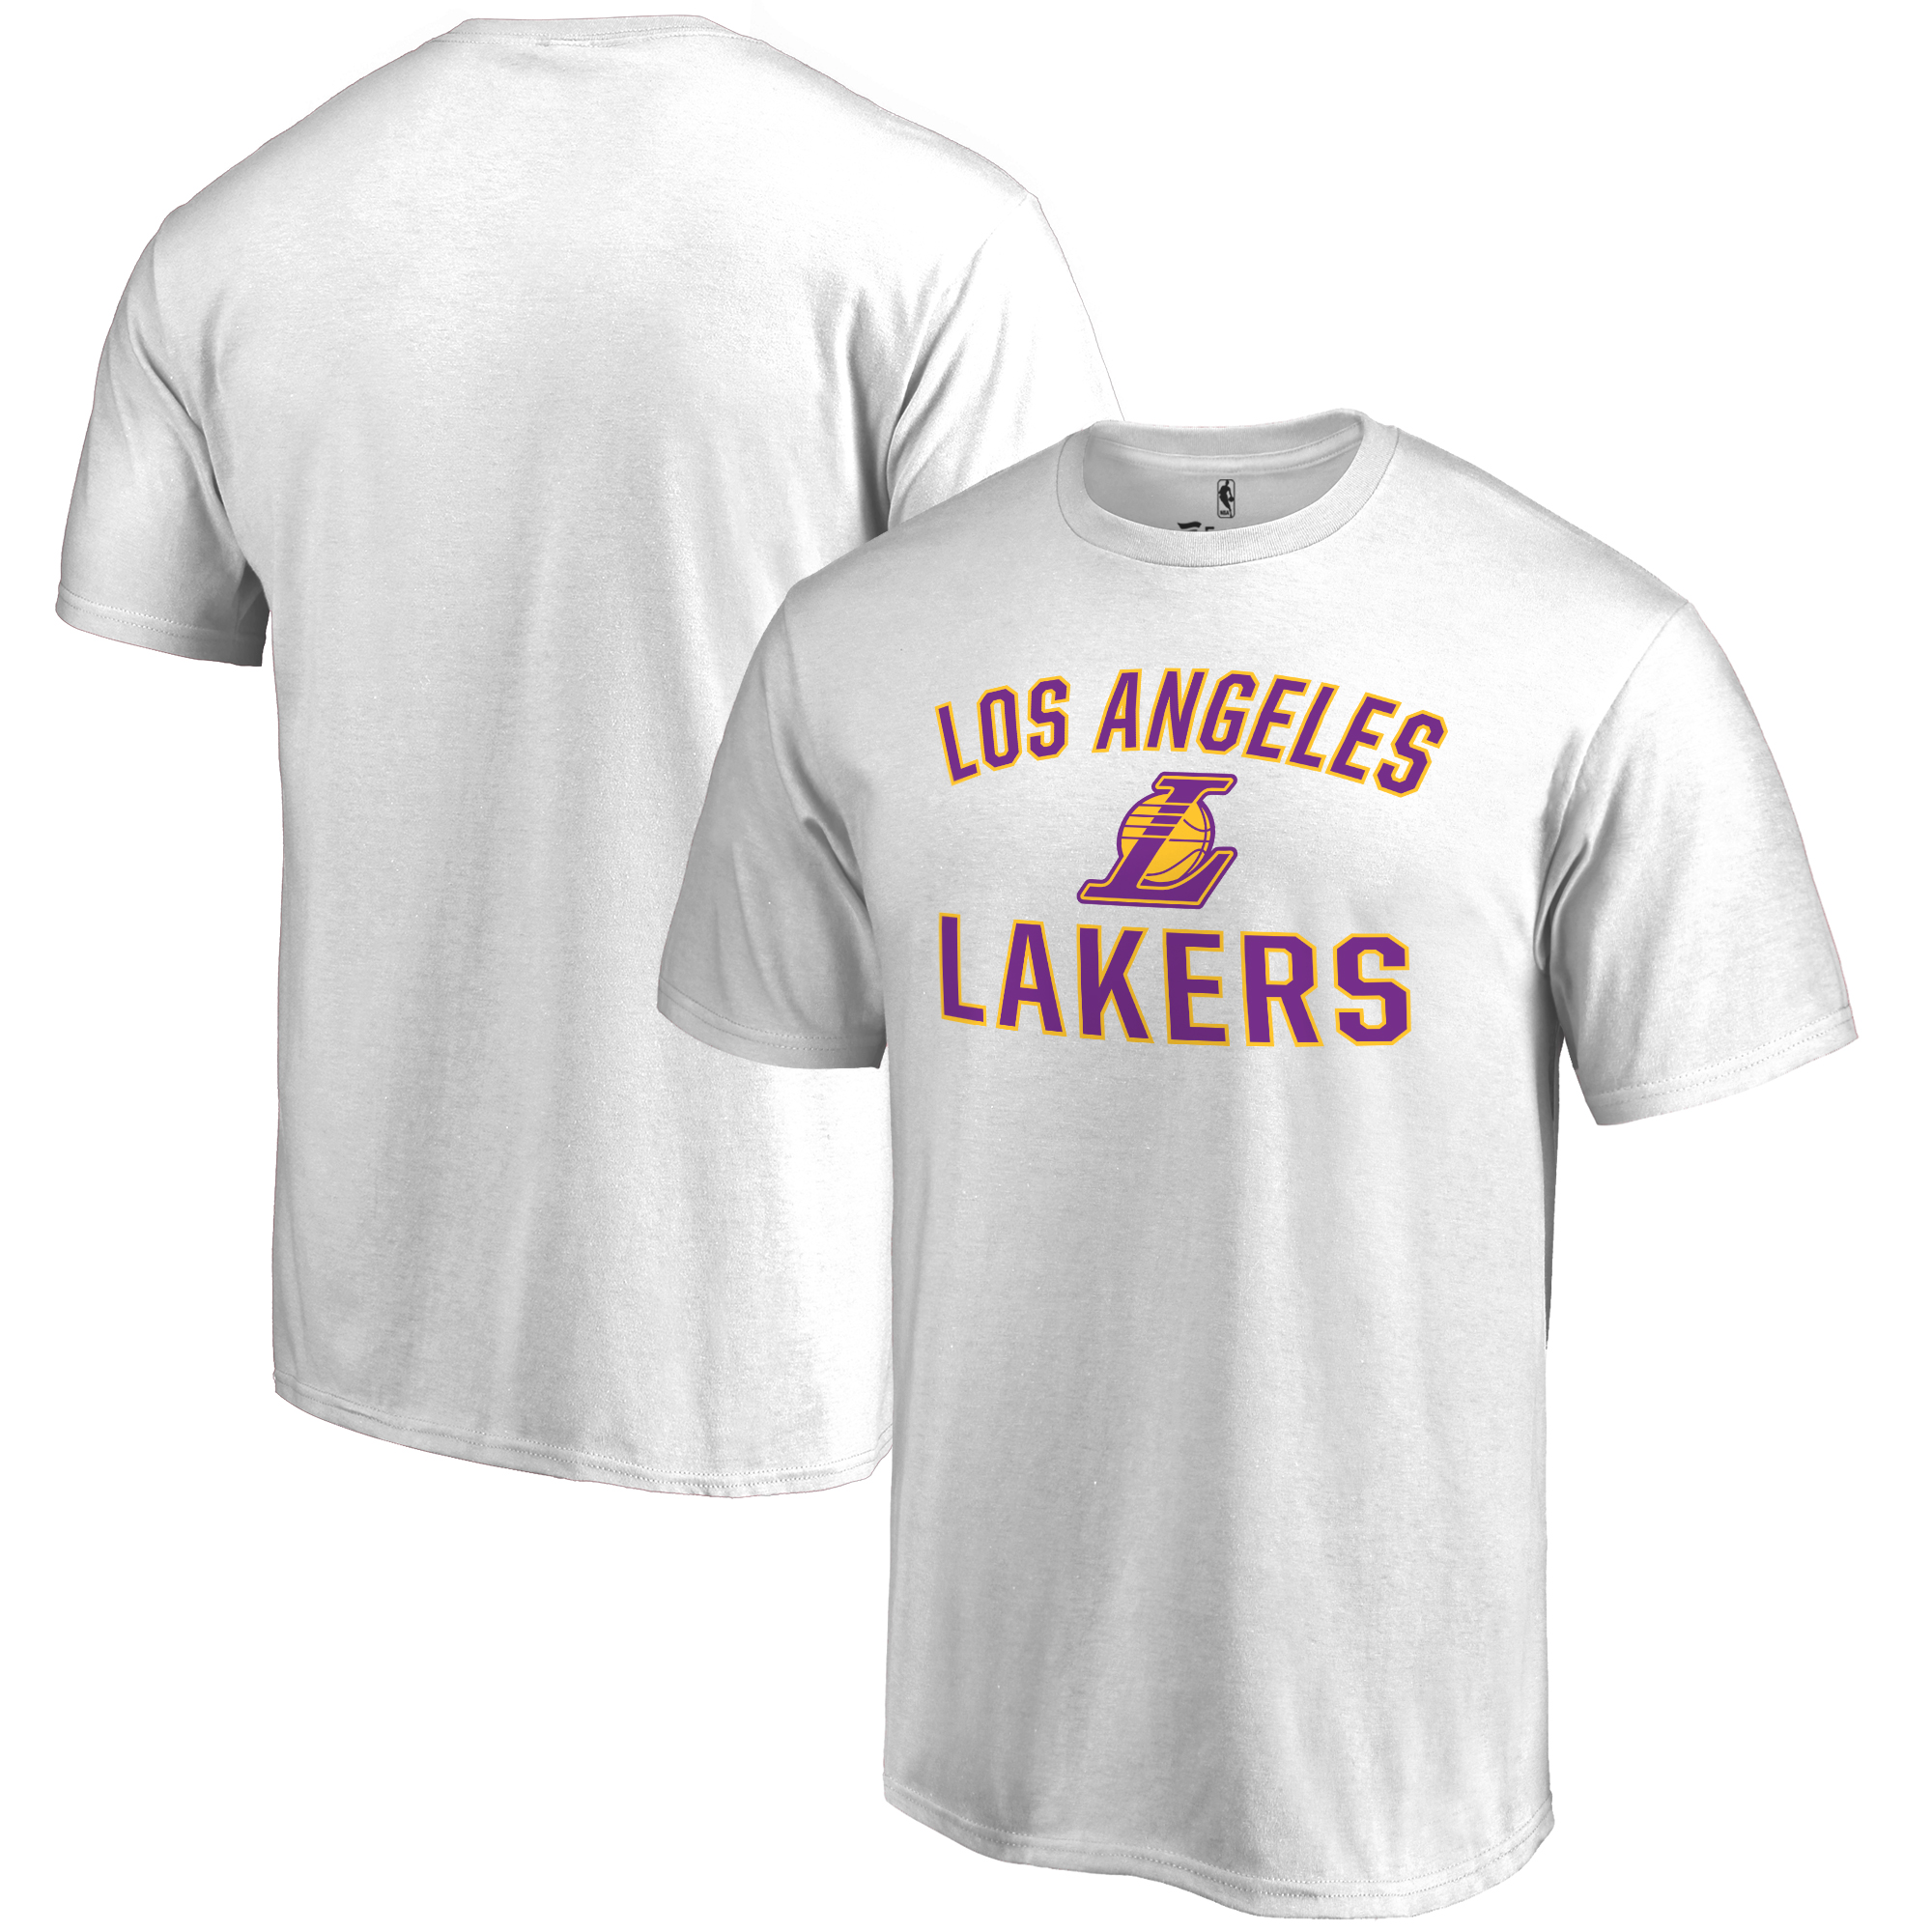 Los Angeles Lakers Victory Arch T-Shirt - White